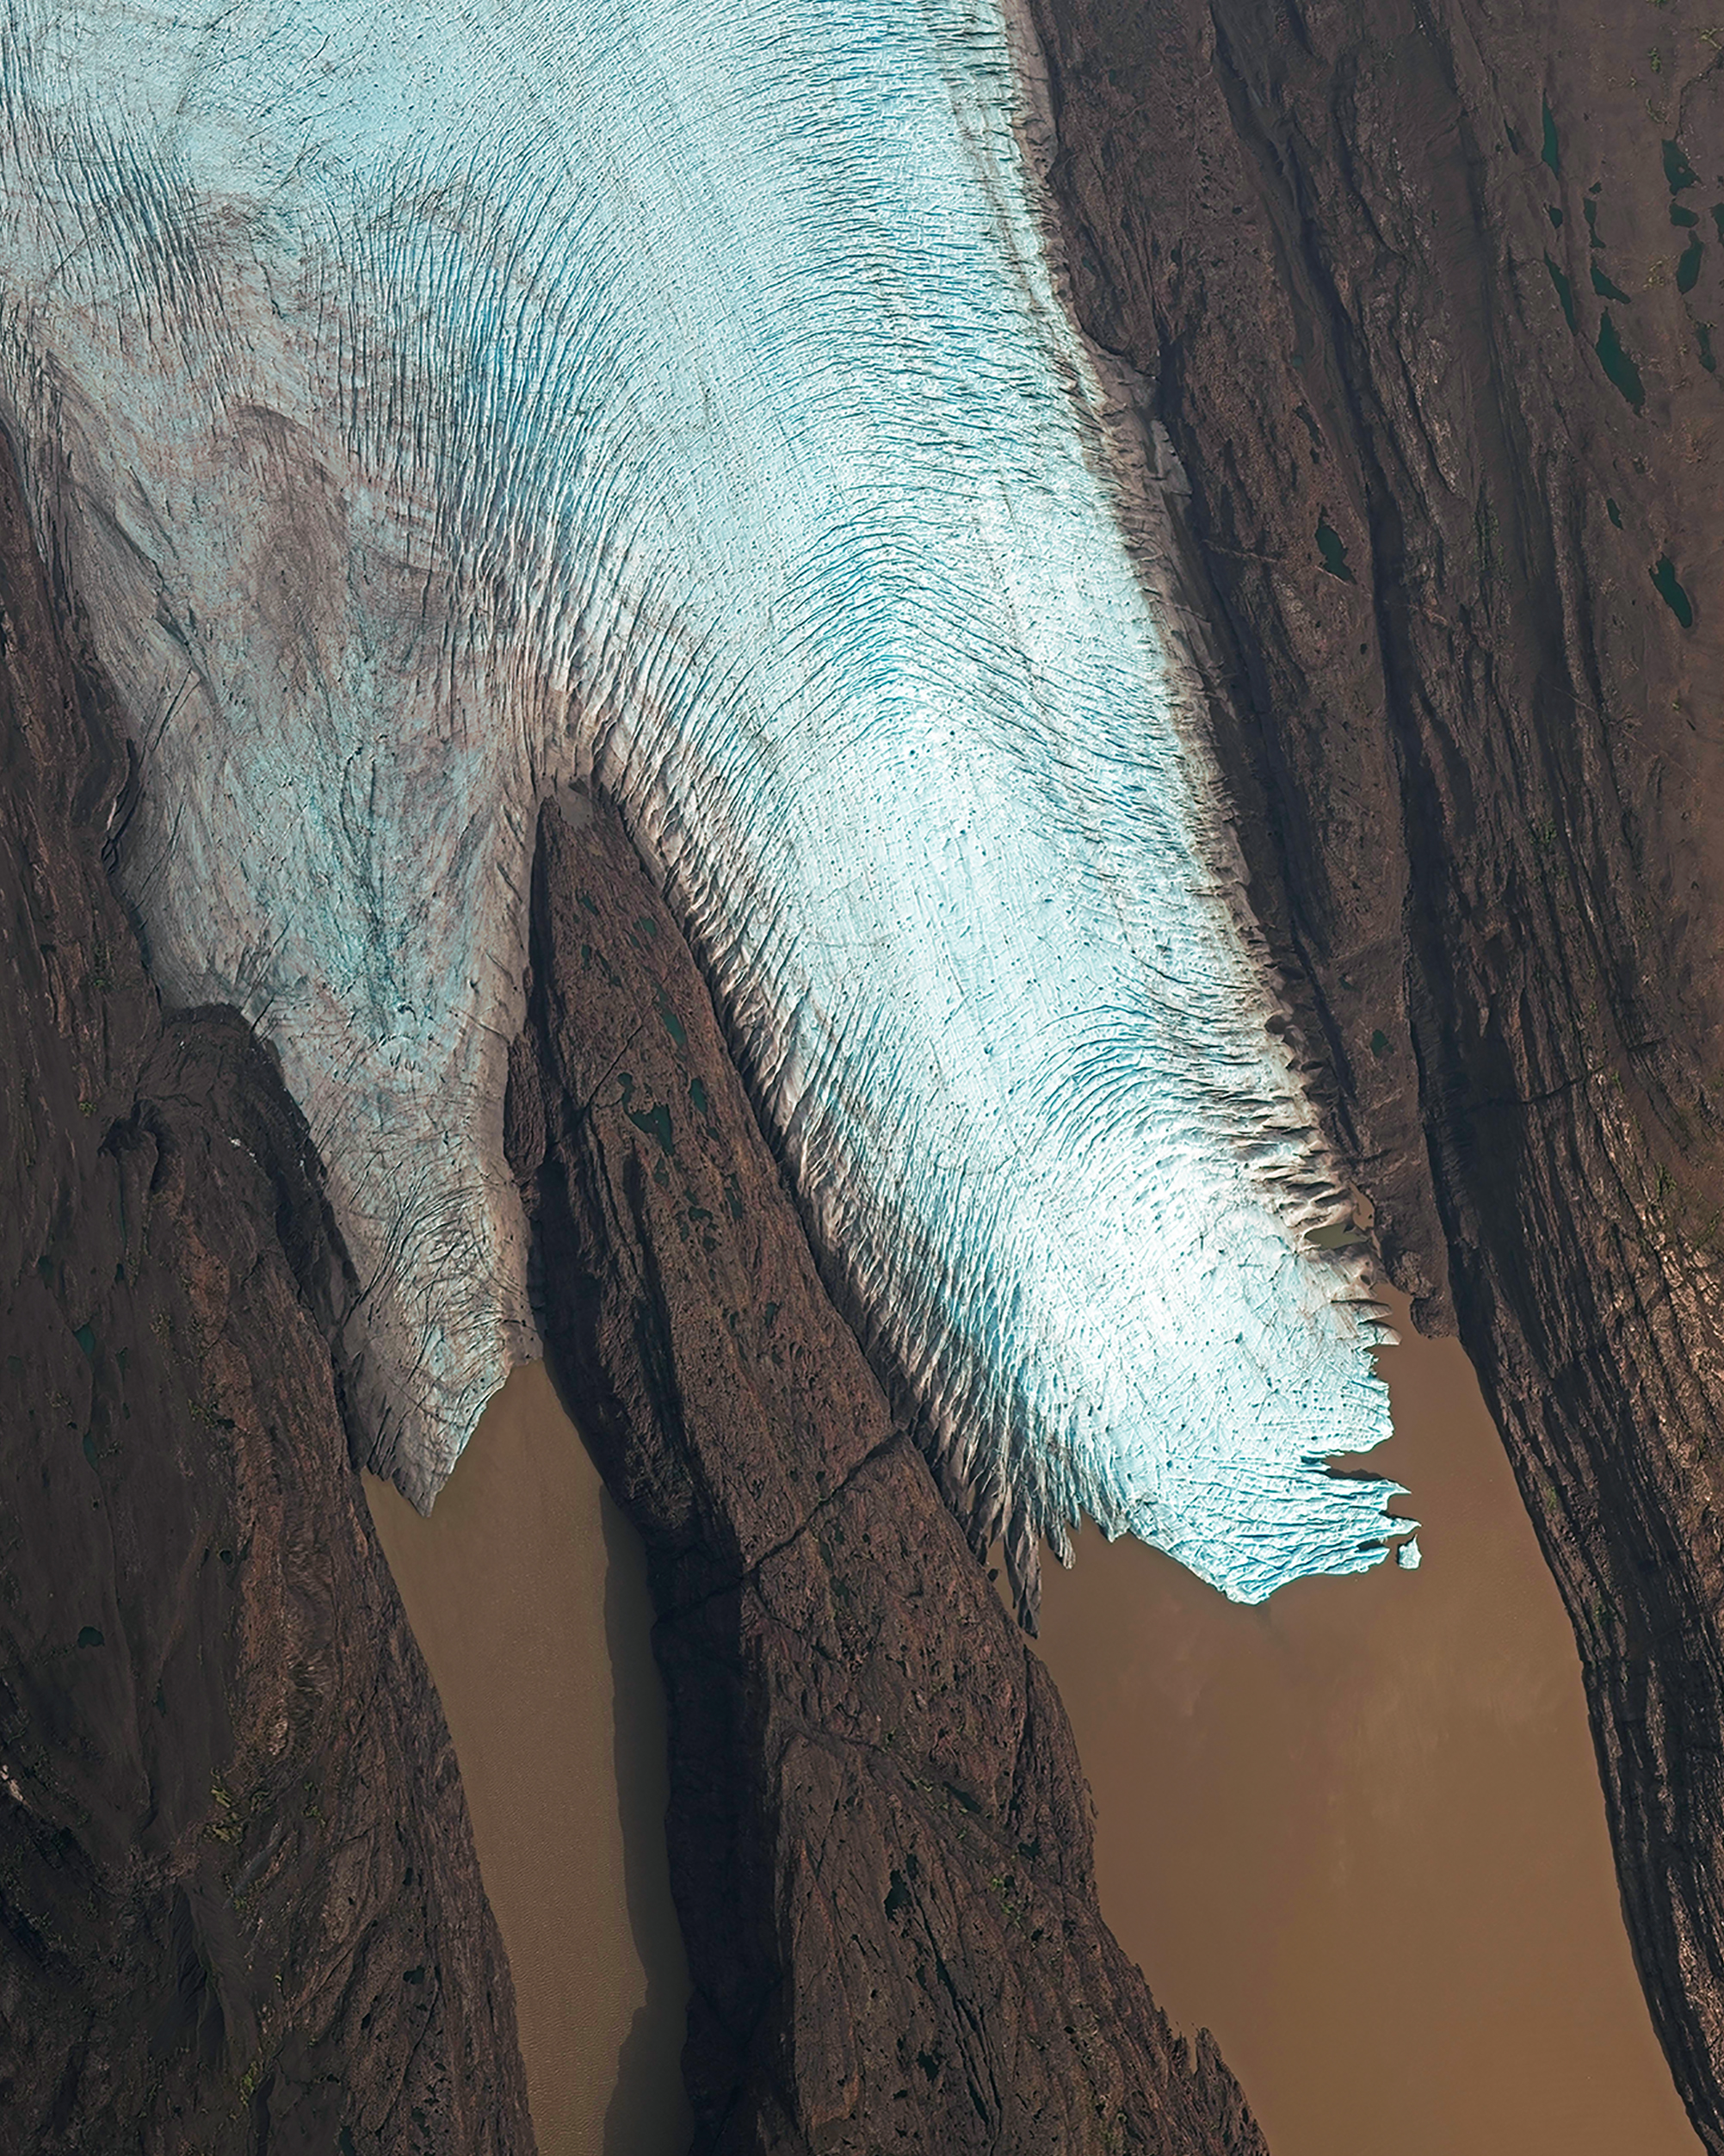 A finger of the Cook Ice Cap meets a fjord on La Grande Terre, the largest of the Kerguelen Islands. Also known as the Desolation Islands, the Kerguelens are located in the Antarctic and are among the most isolated places on Earth — more than 2,100 miles (3,300 km) from Madagascar in the southern Indian Ocean. The islands have no indigenous inhabitants, but since they are part of the French Southern and Antarctic Lands, they host a permanent presence of 45-100 soldiers, scientists, engineers and researchers from France.  -49.258528°, 69.222139°  Source imagery: Maxar Technologies